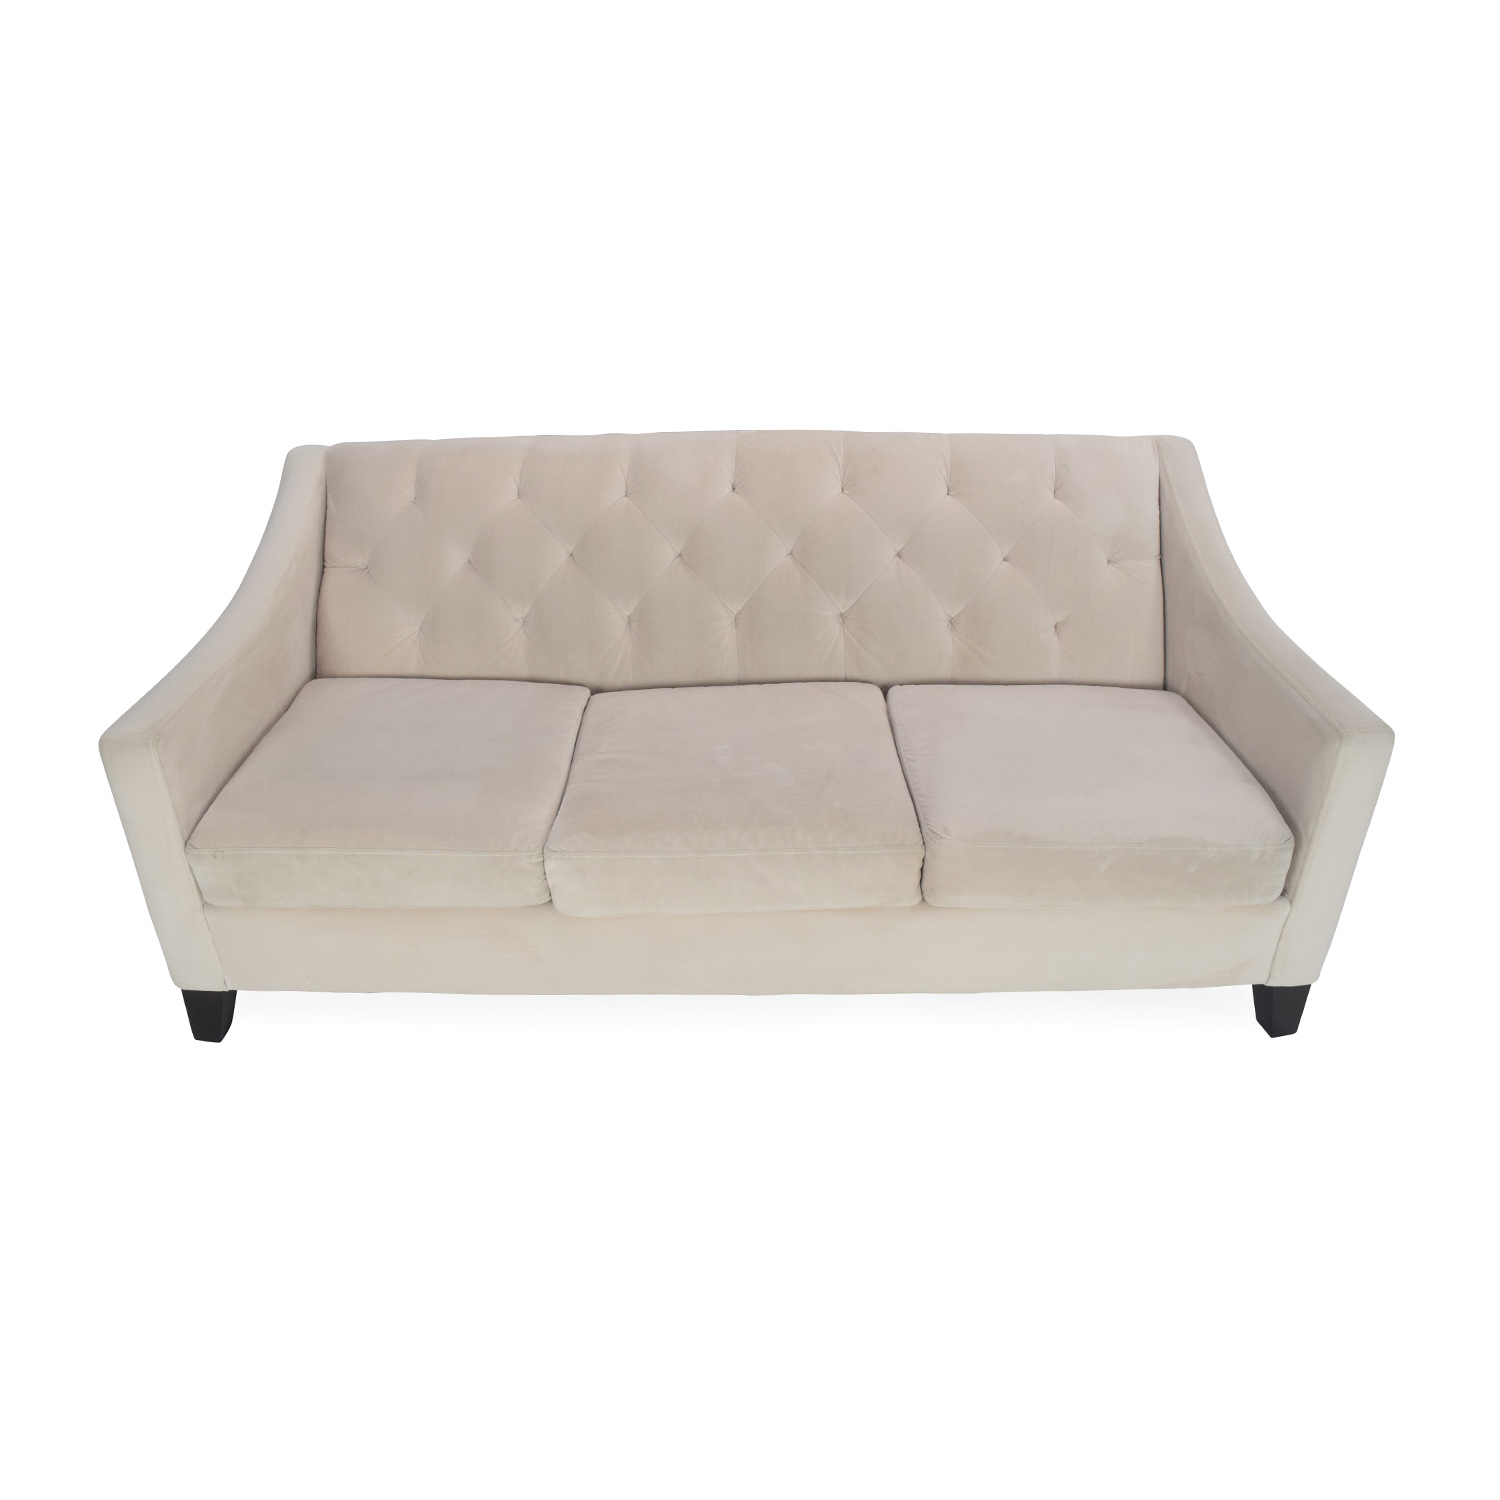 Max Home Furniture Macys Chloe Tufted Sofa